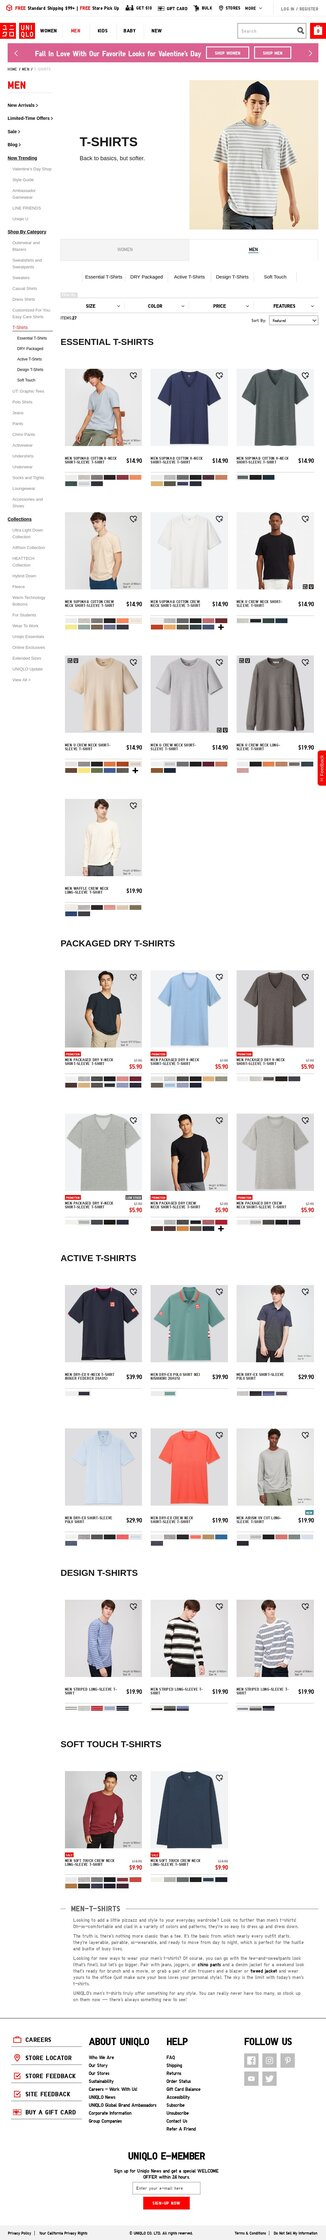 The Uniqlo Men's T-shirt Category